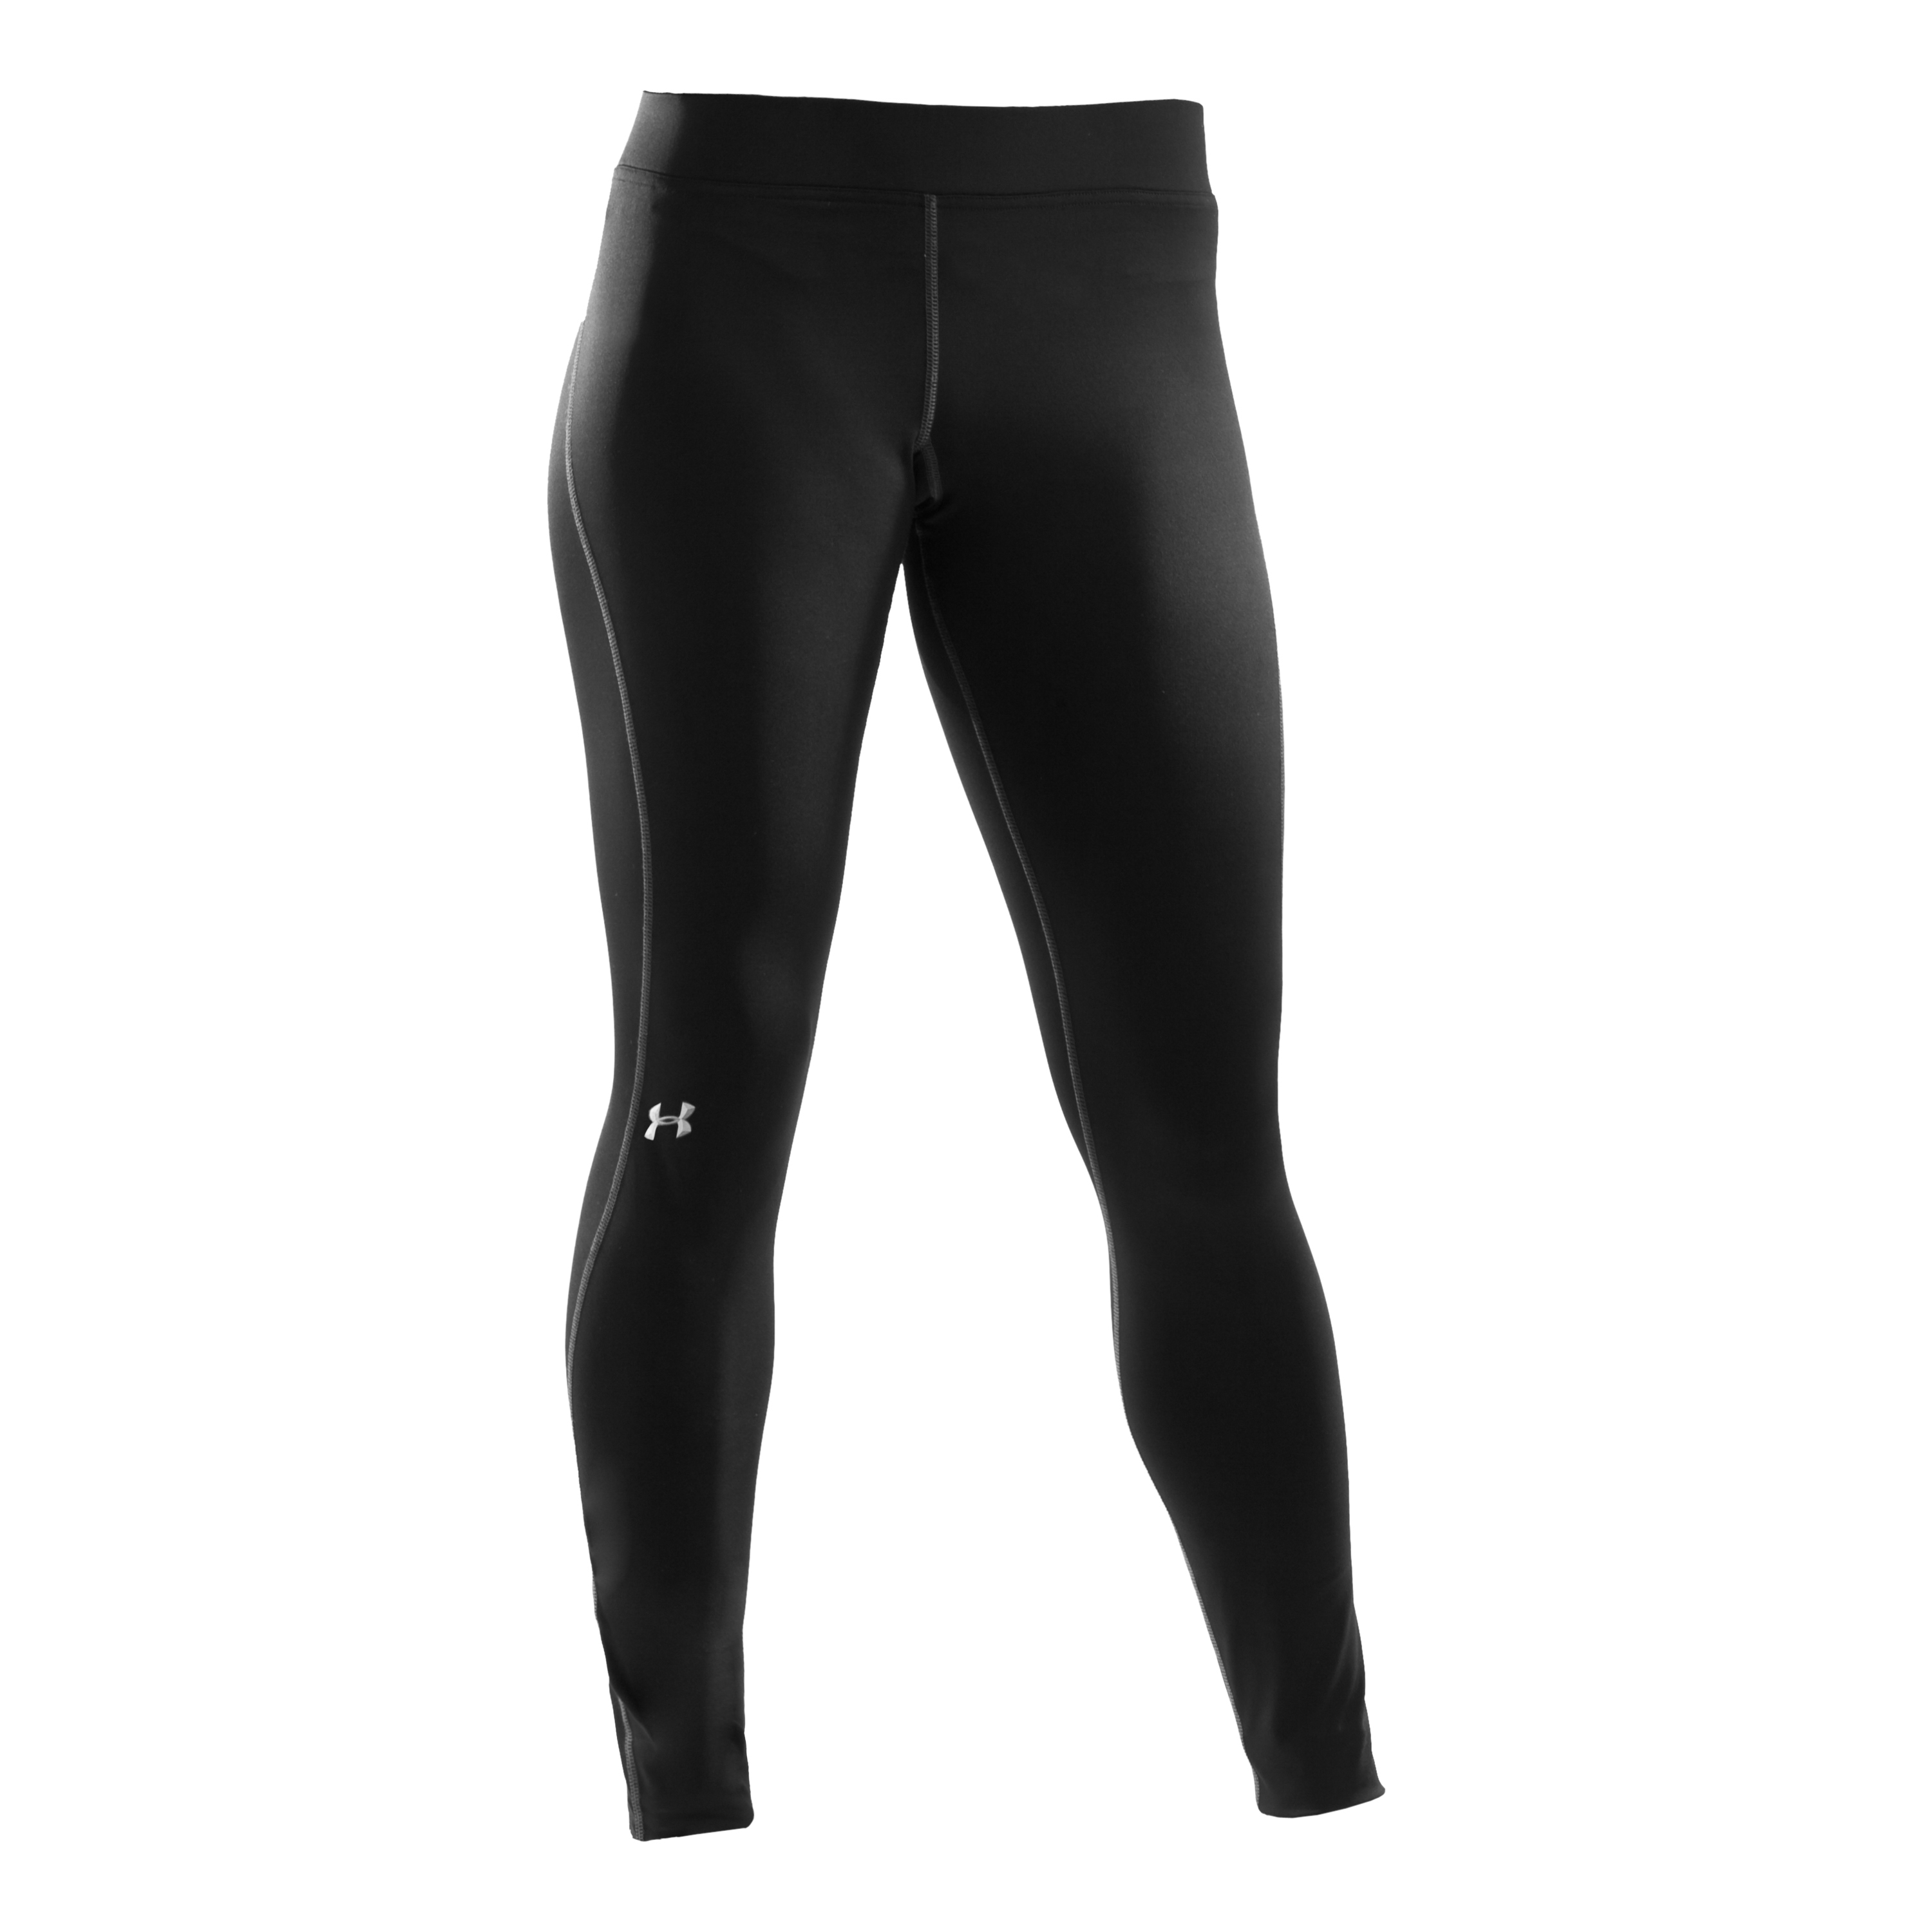 Under Armour Women Leggings ColdGear schwarz